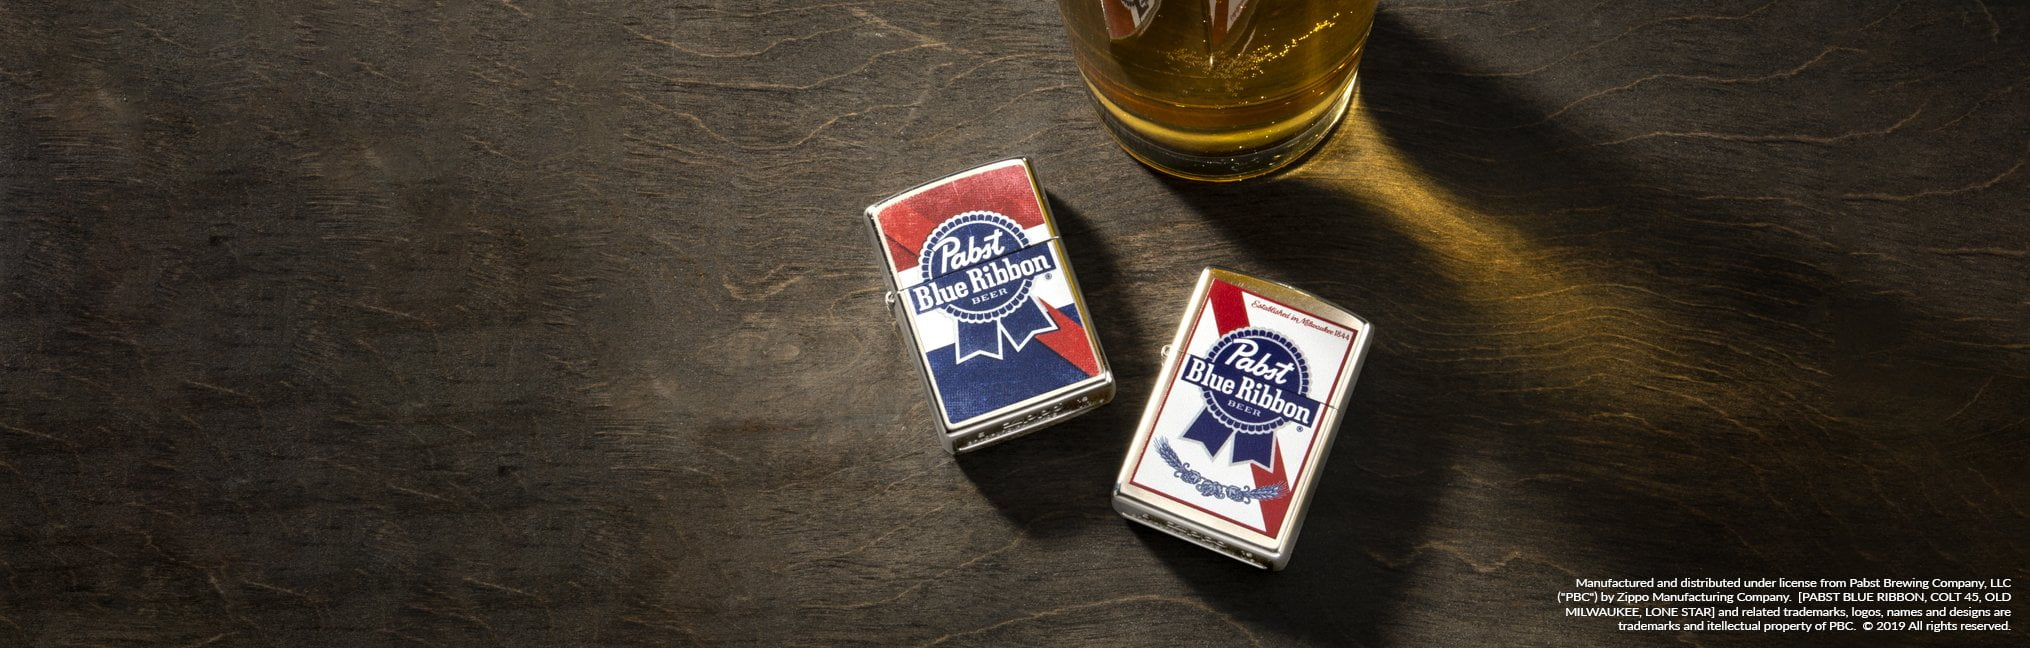 Banner for the Pabst Brewing Company Lighters collection